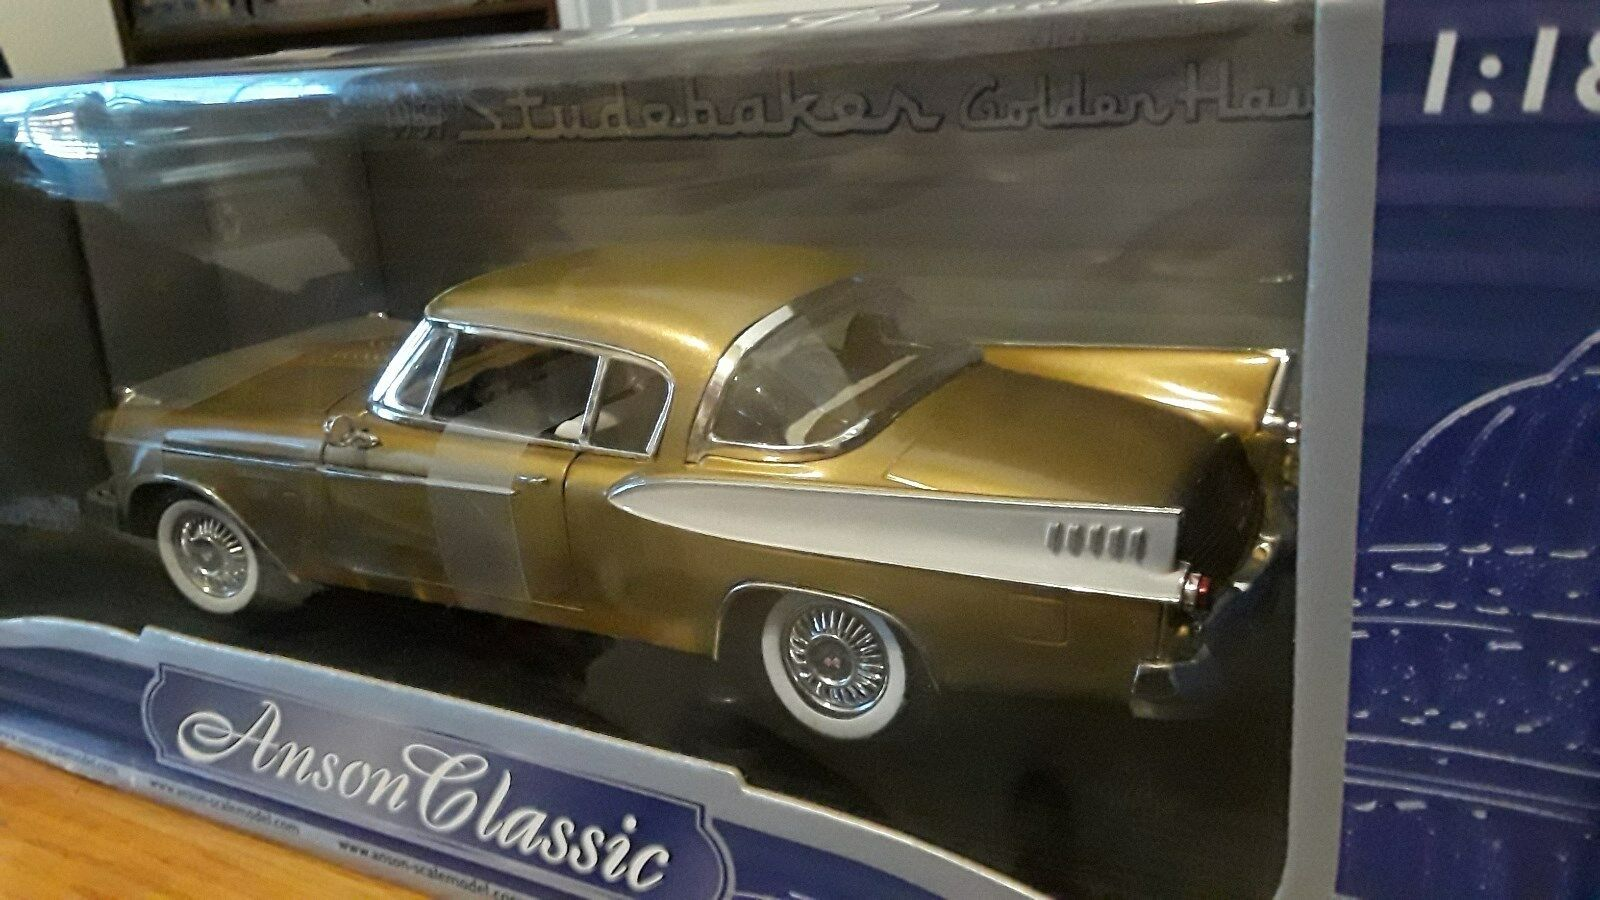 1957 Studebaker oren Hawk or Anson Classic  1 18 Coupe Die Cast Model Car